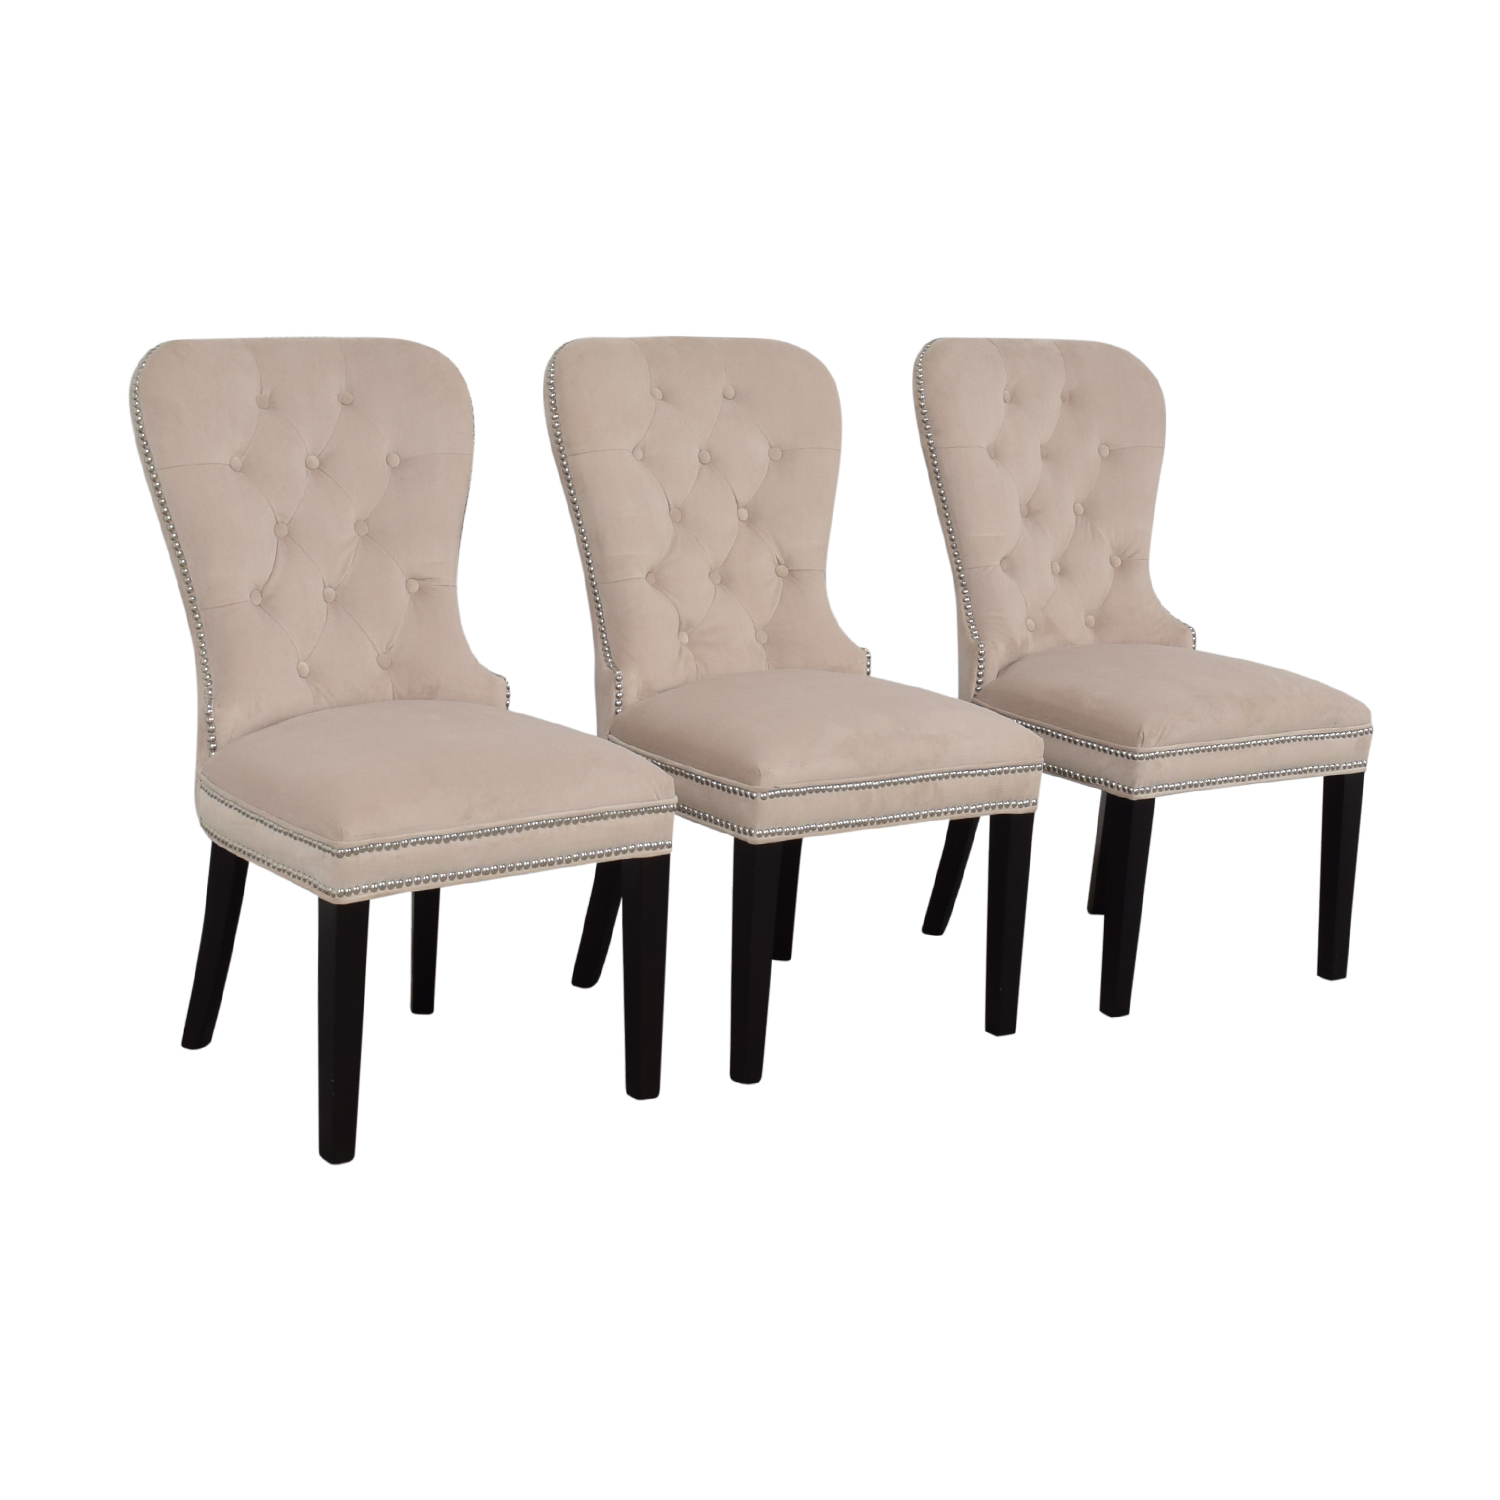 90 off z gallerie z gallerie charlotte cream tufted nailhead dining chairs chairs